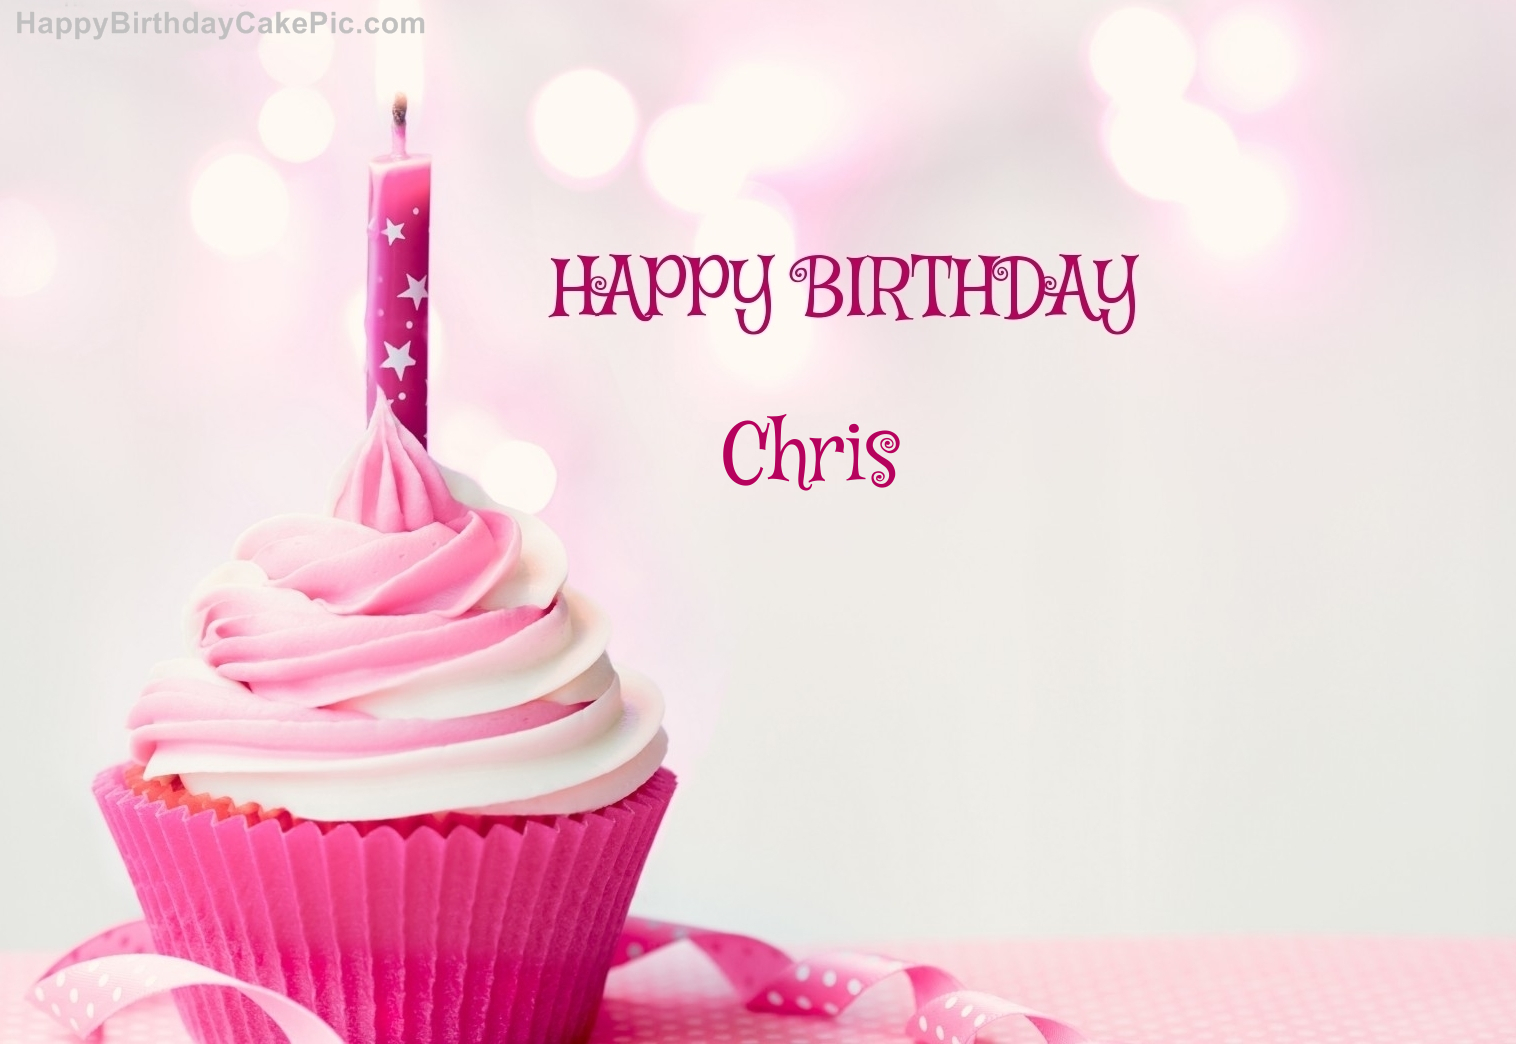 Happy Birthday Cupcake Candle Pink Cake For Chris